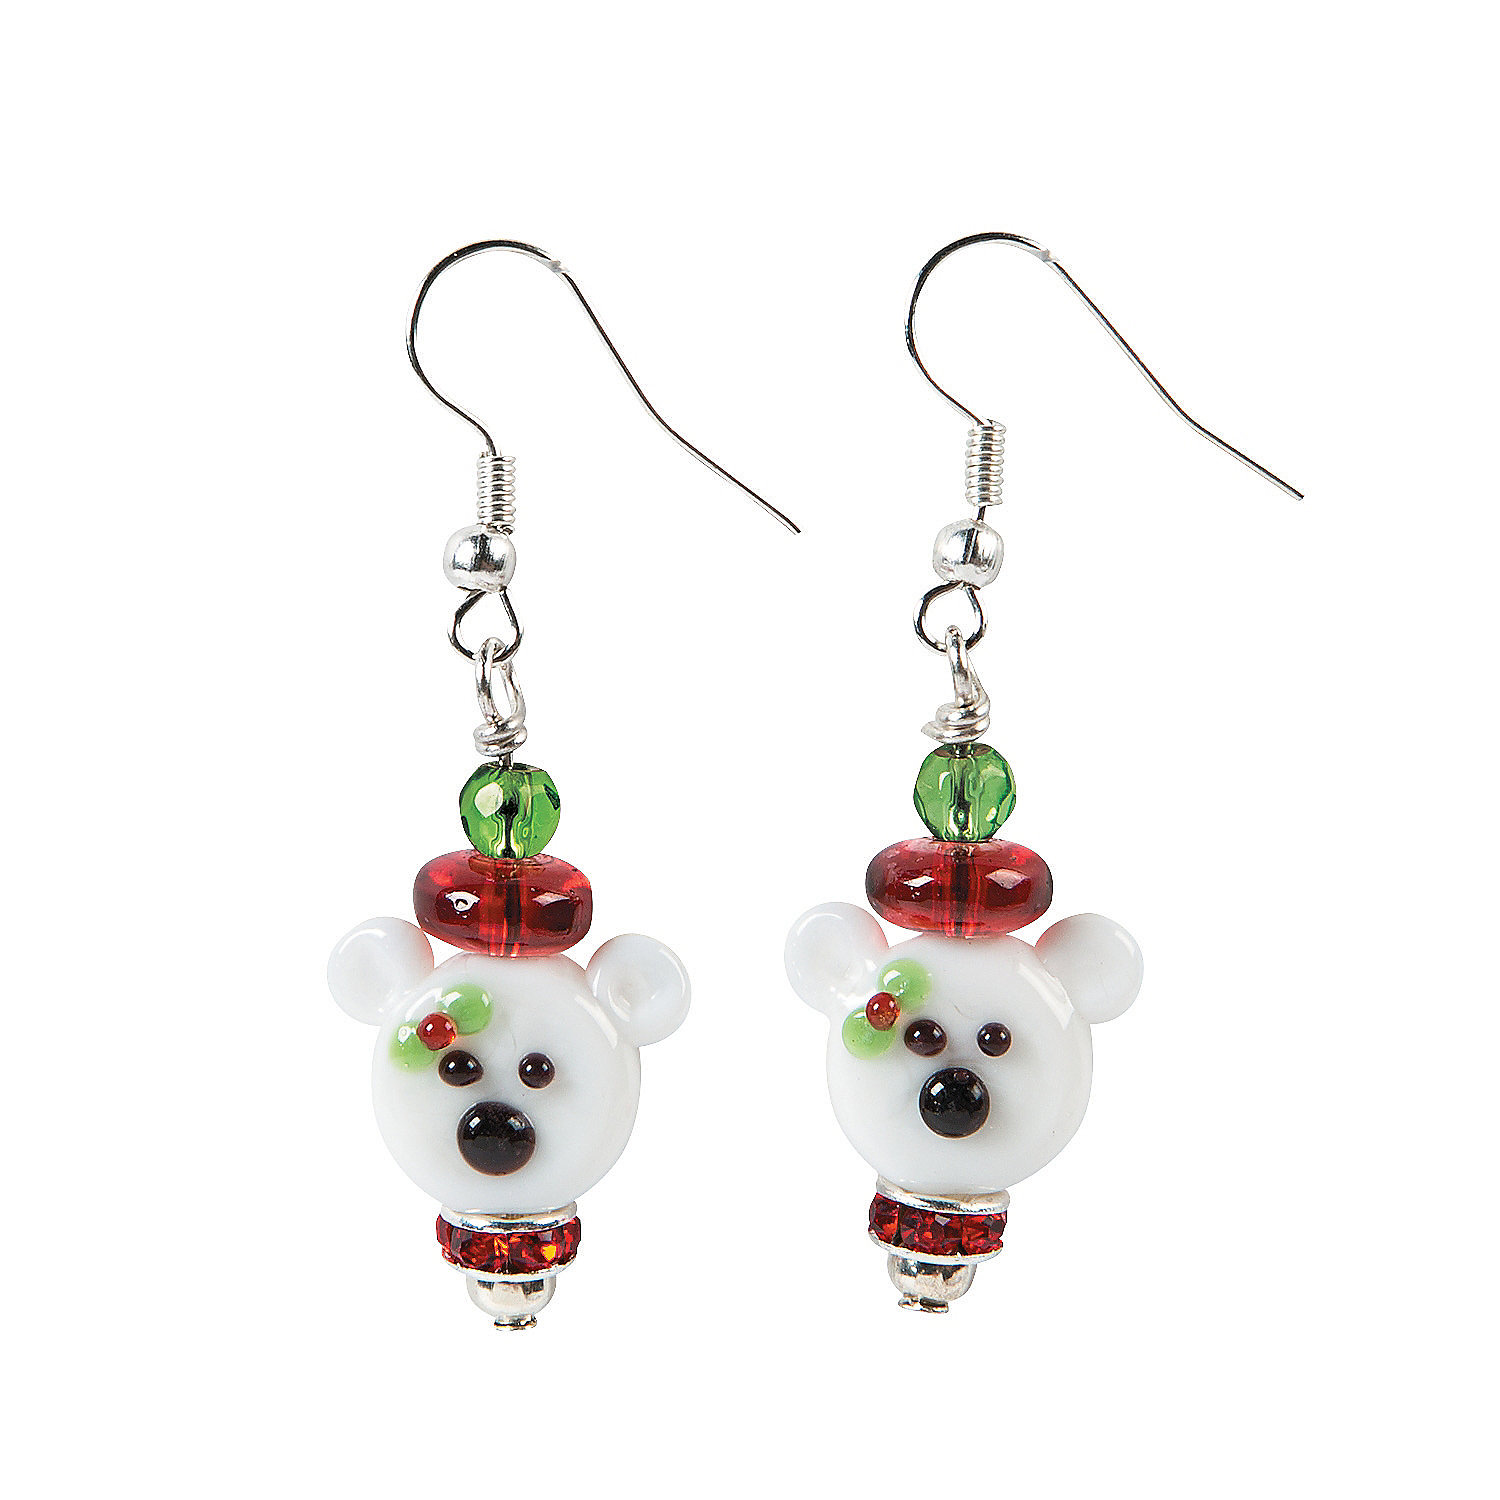 Polar bear lampwork earring craft kit jewelry crafts for Craft and jewelry supplies